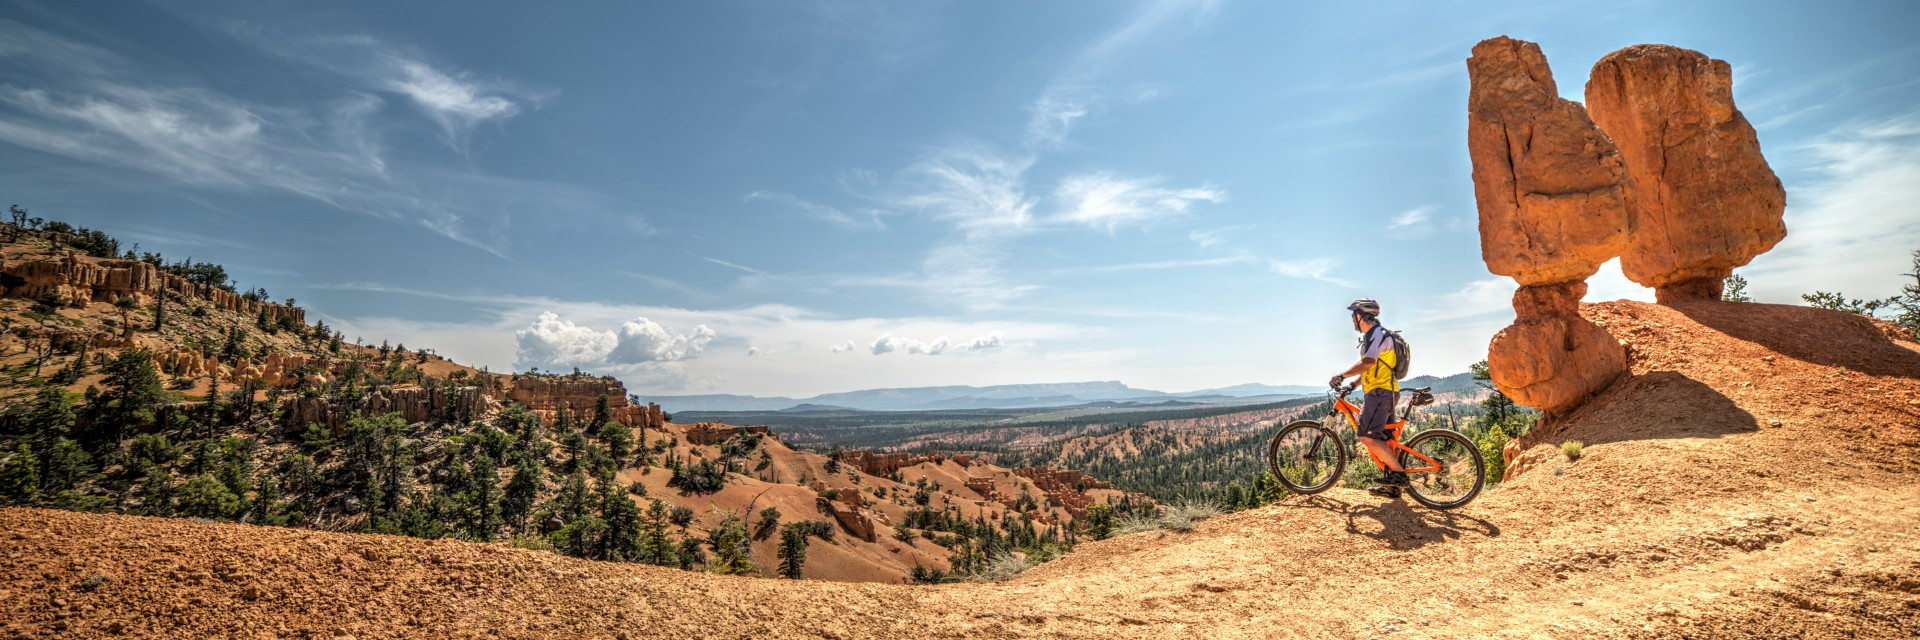 Taking in the amazing views atop the Thunder Mountain Trail, adjacent to Bryce Canyon NP